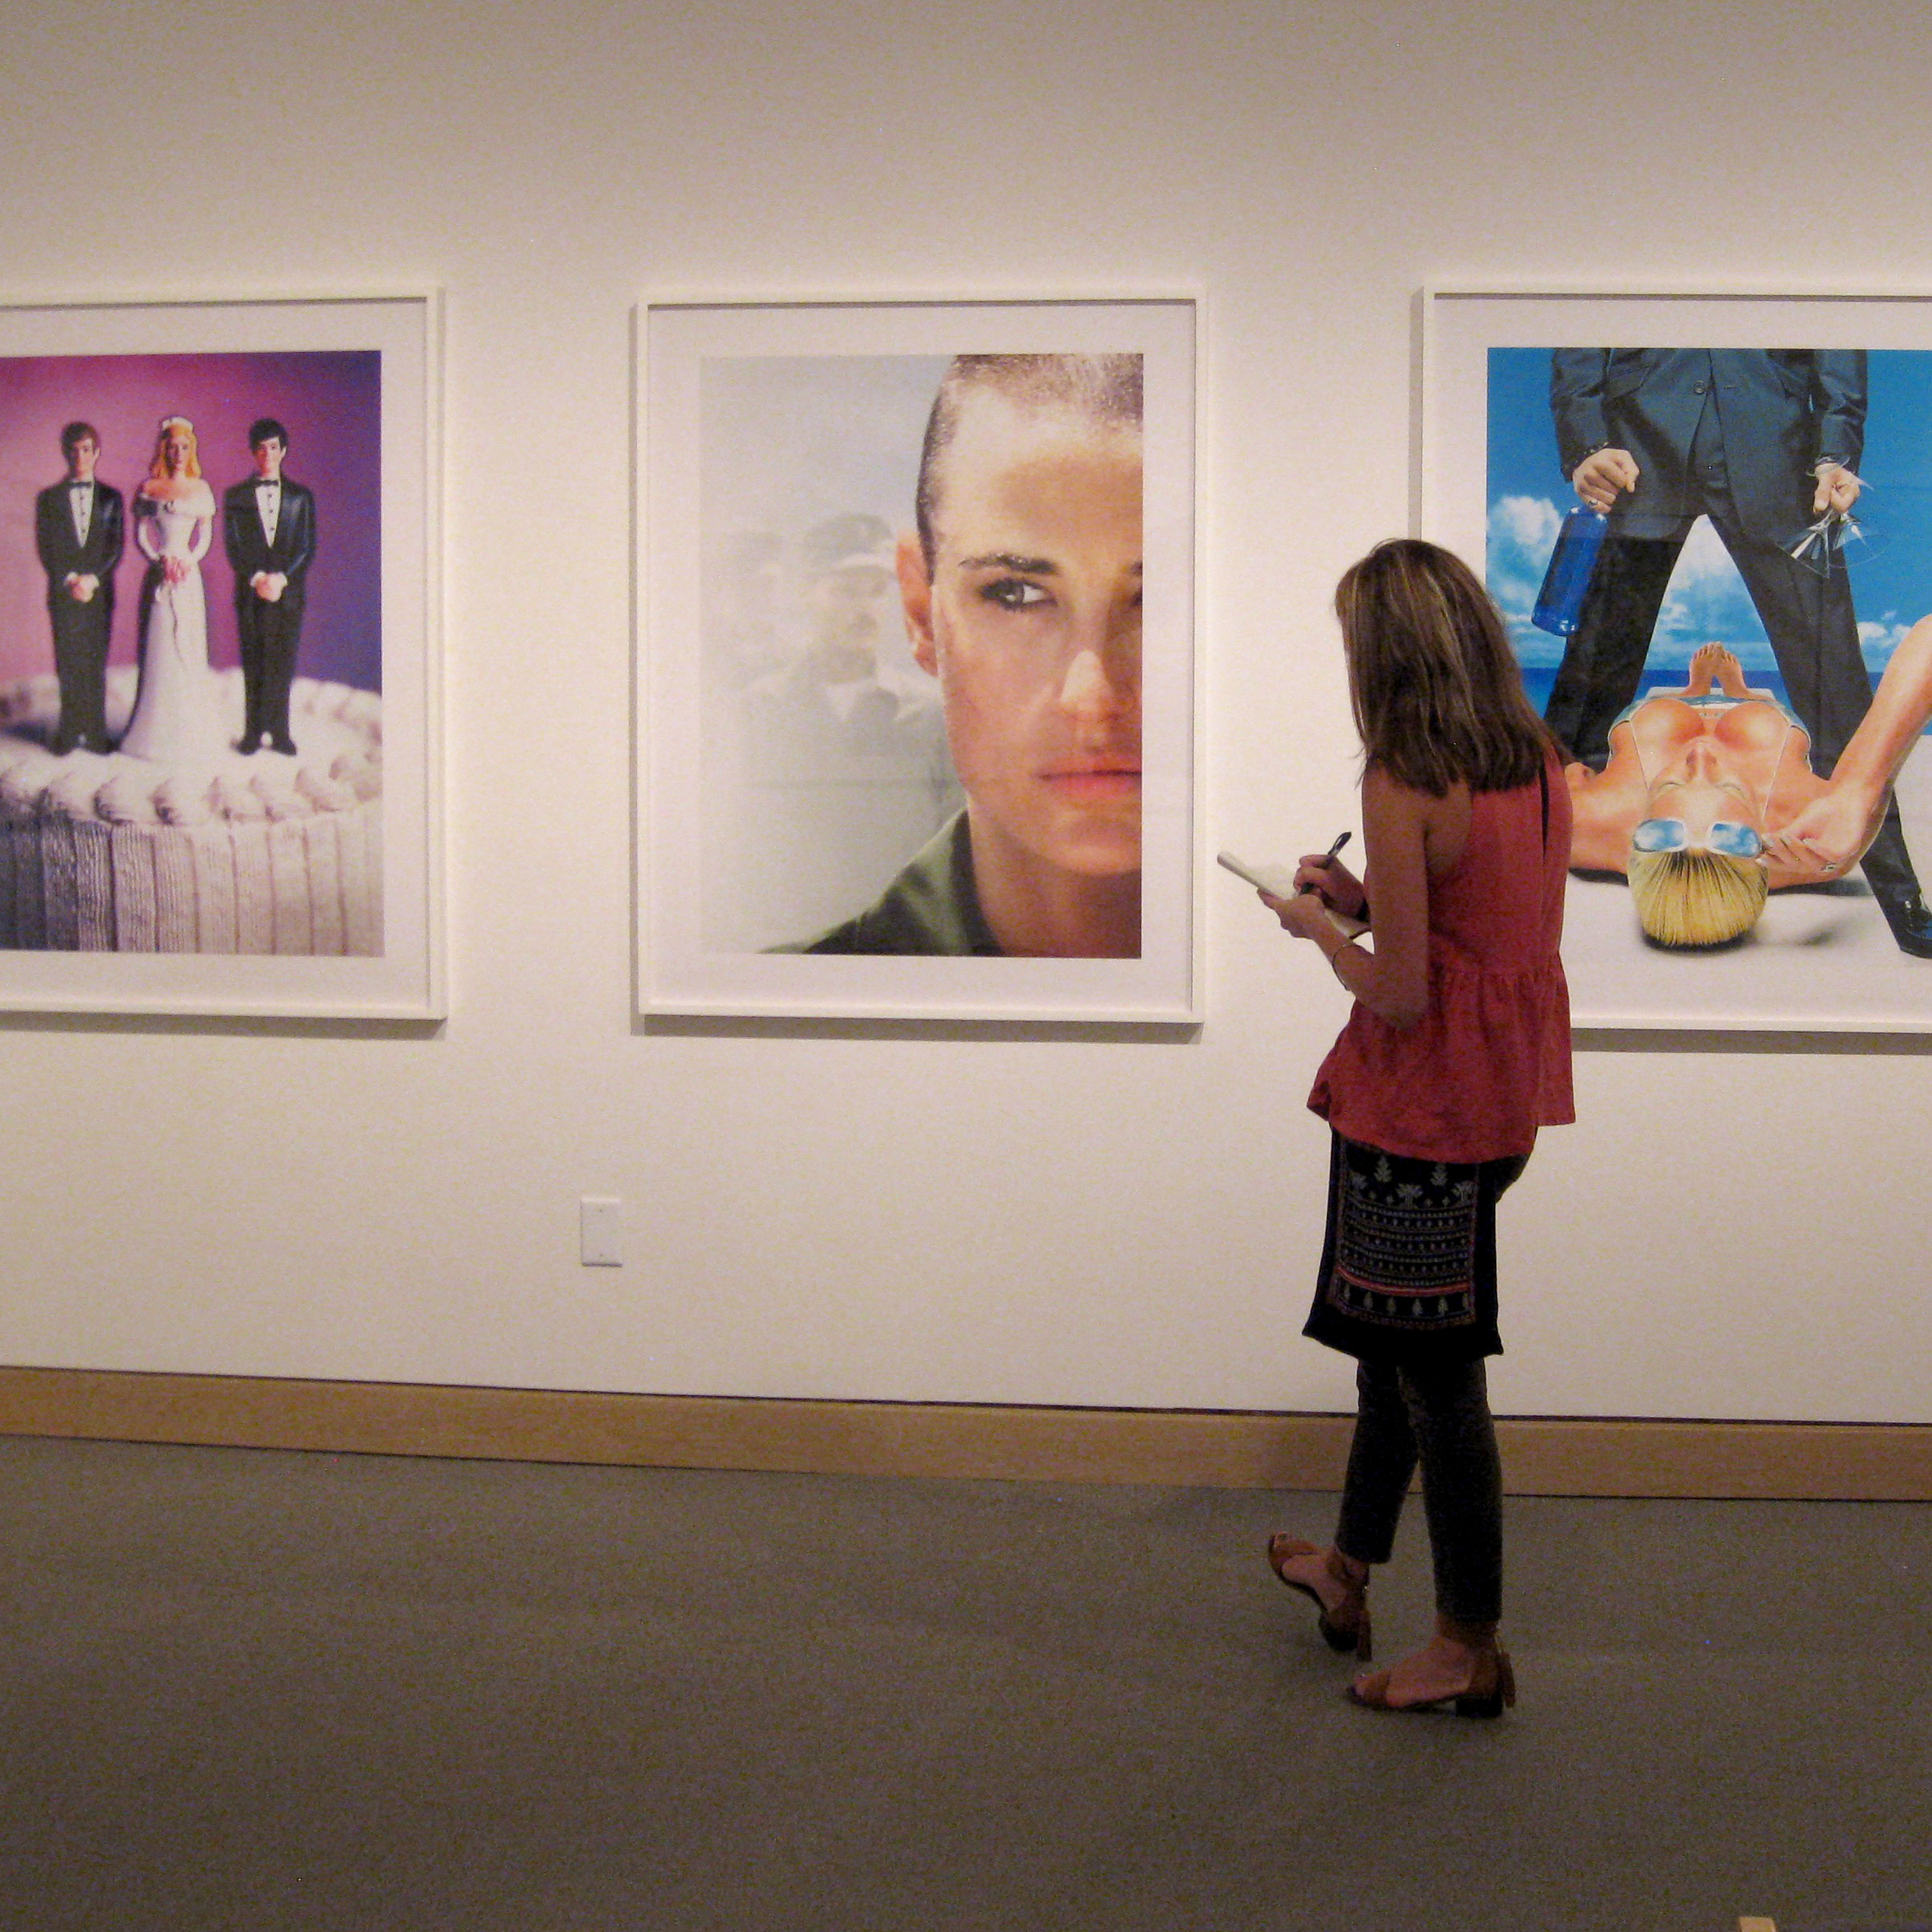 Photo of student in gallery looking at artwork